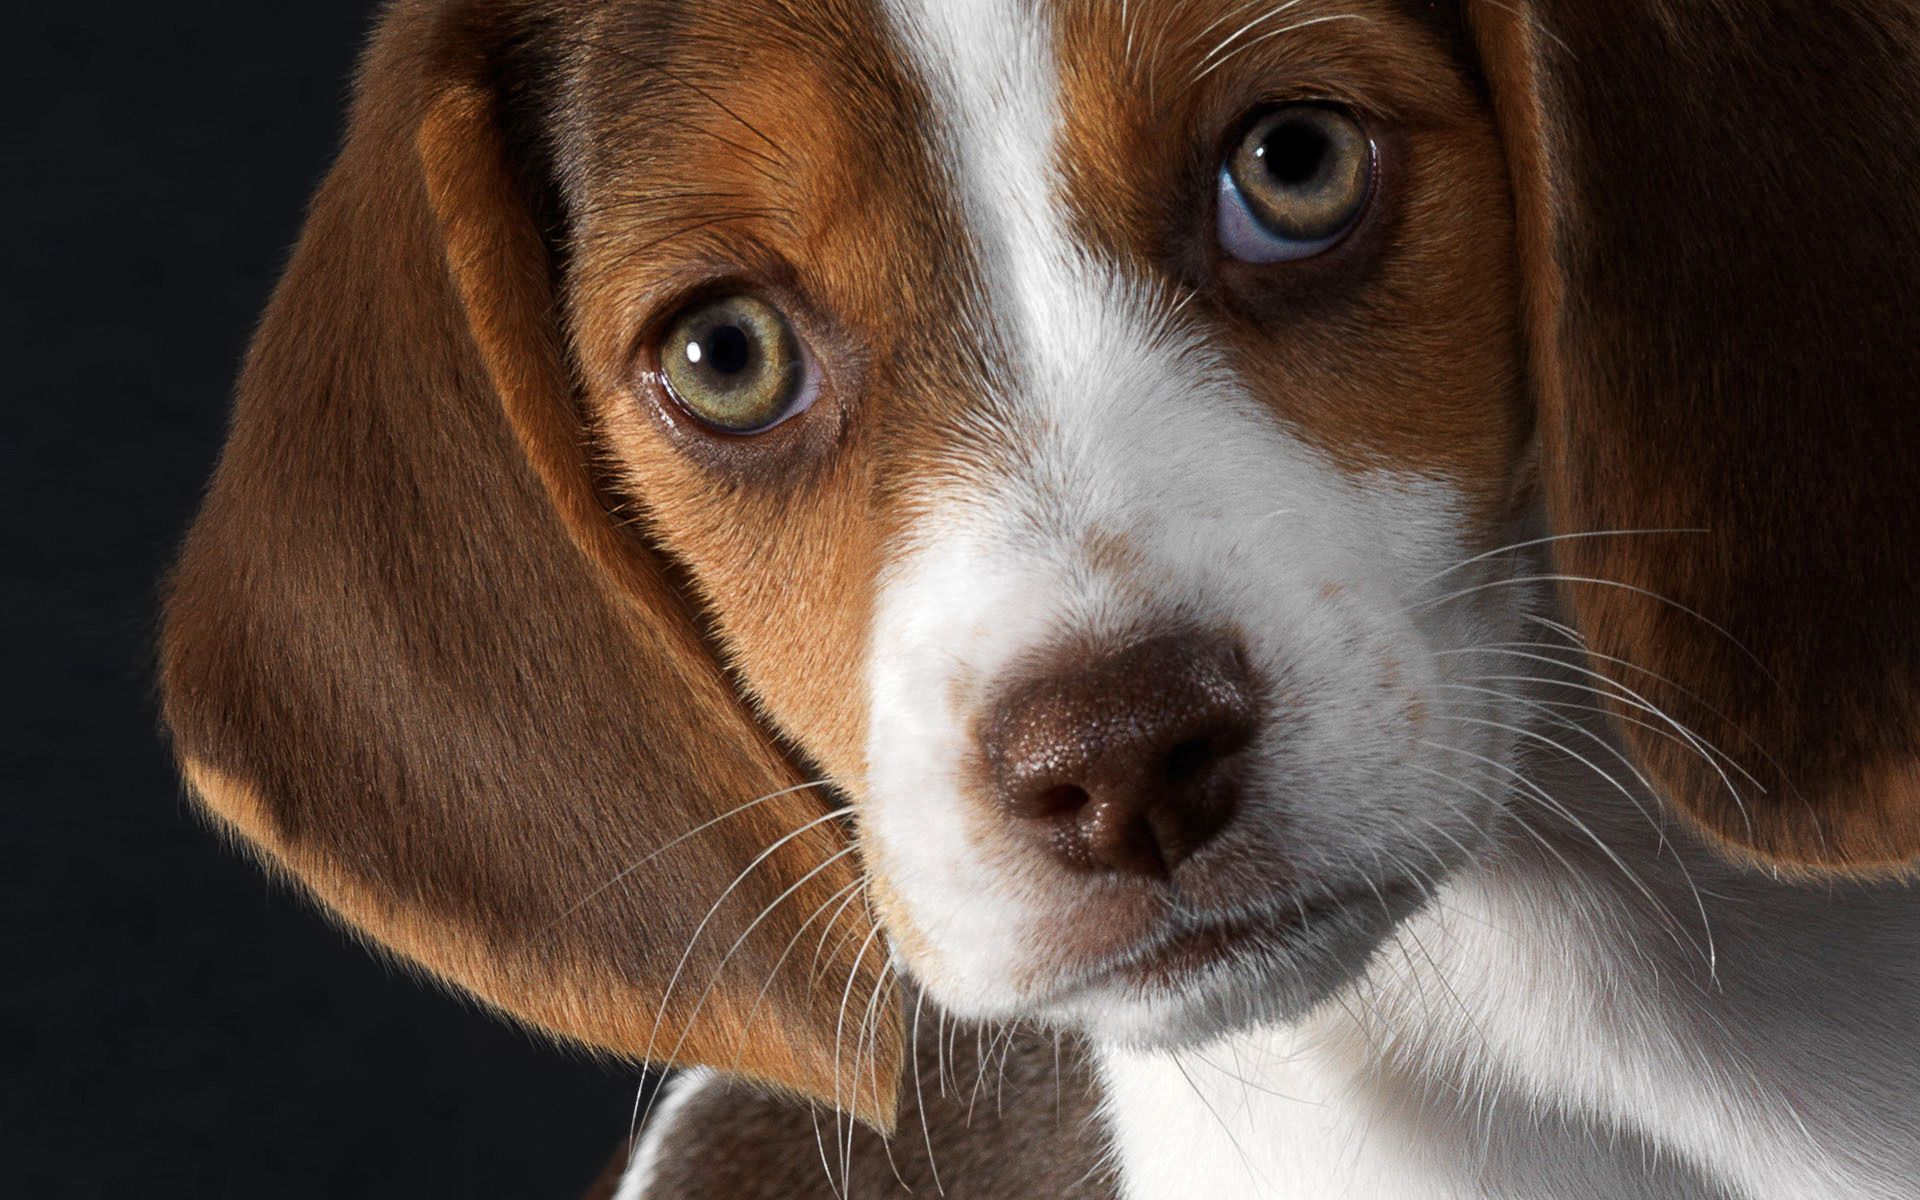 96959 download wallpaper Animals, Dog, Beagle, Puppy, Muzzle, Ears screensavers and pictures for free